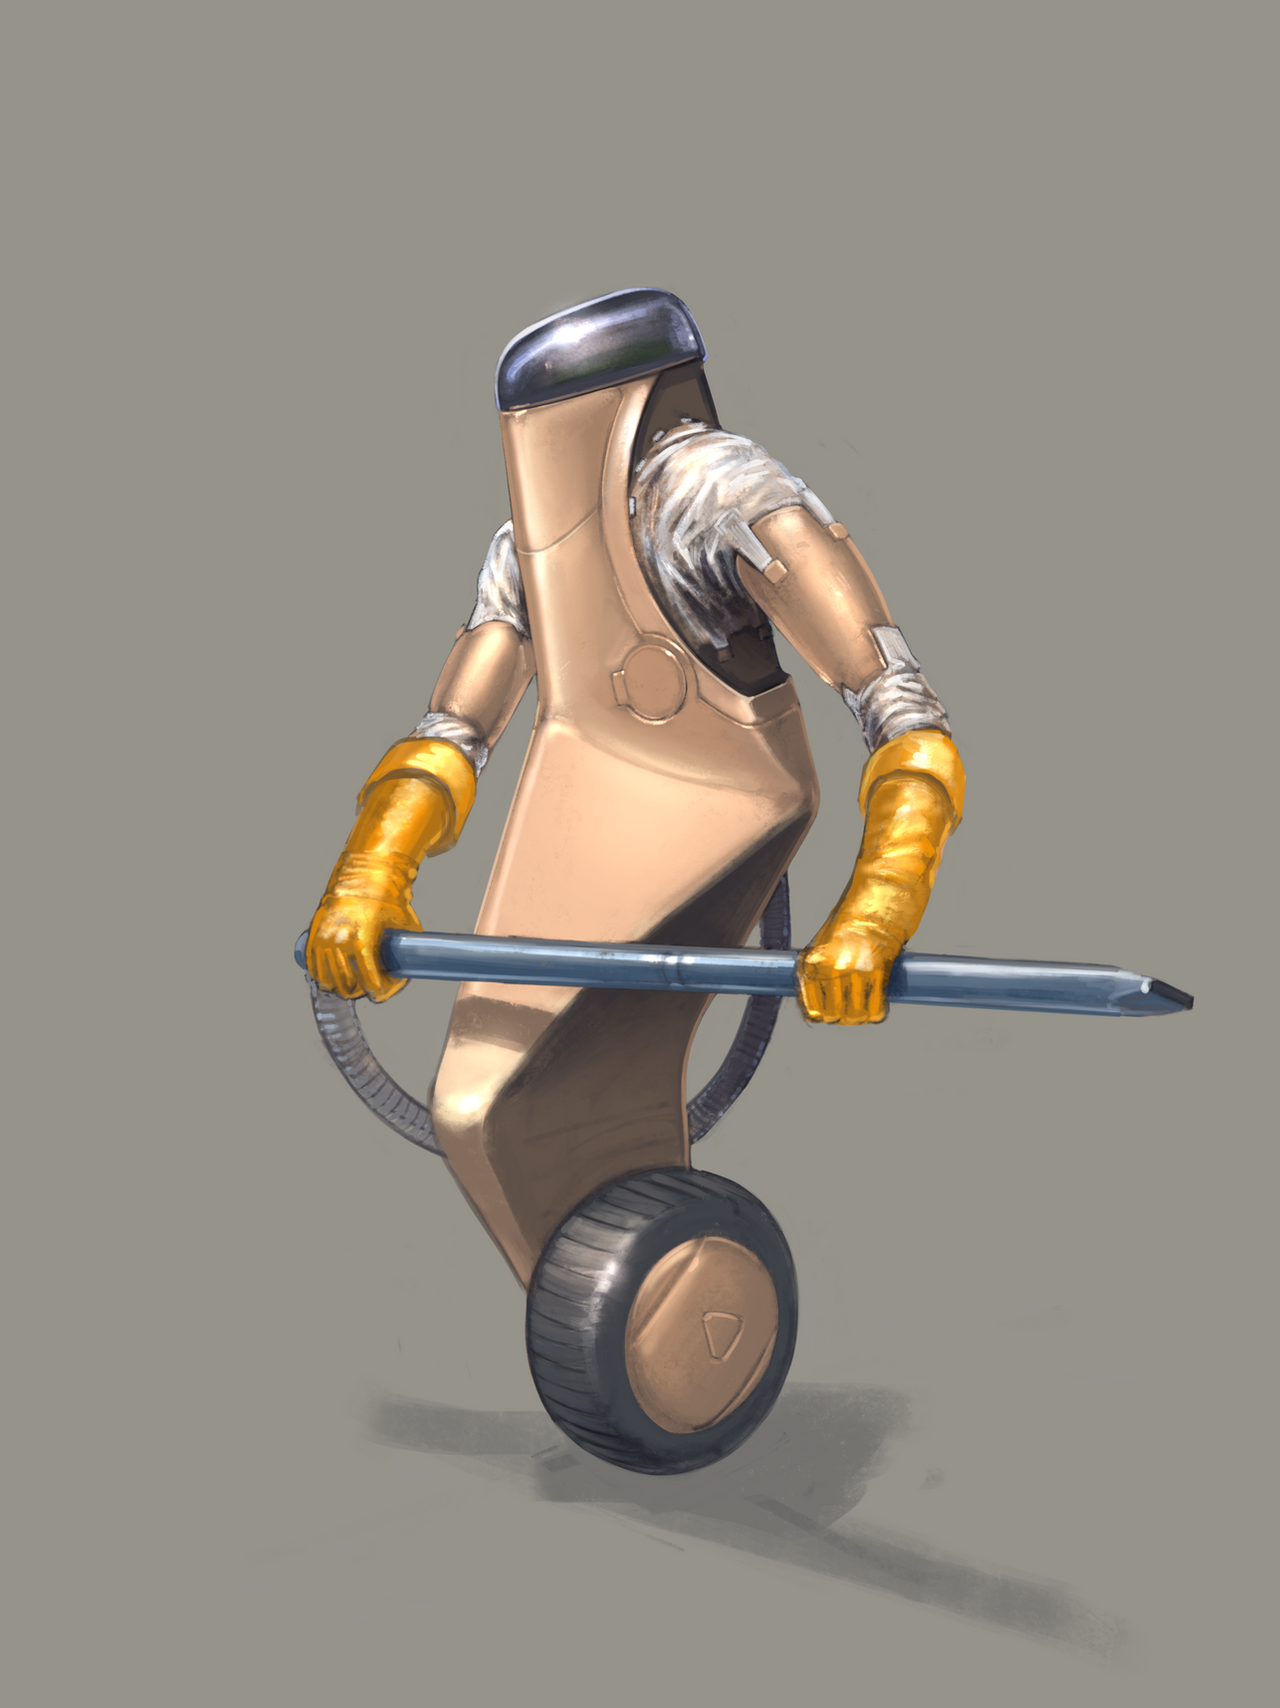 Sketchwars - Robot Housekeeper by Legato895